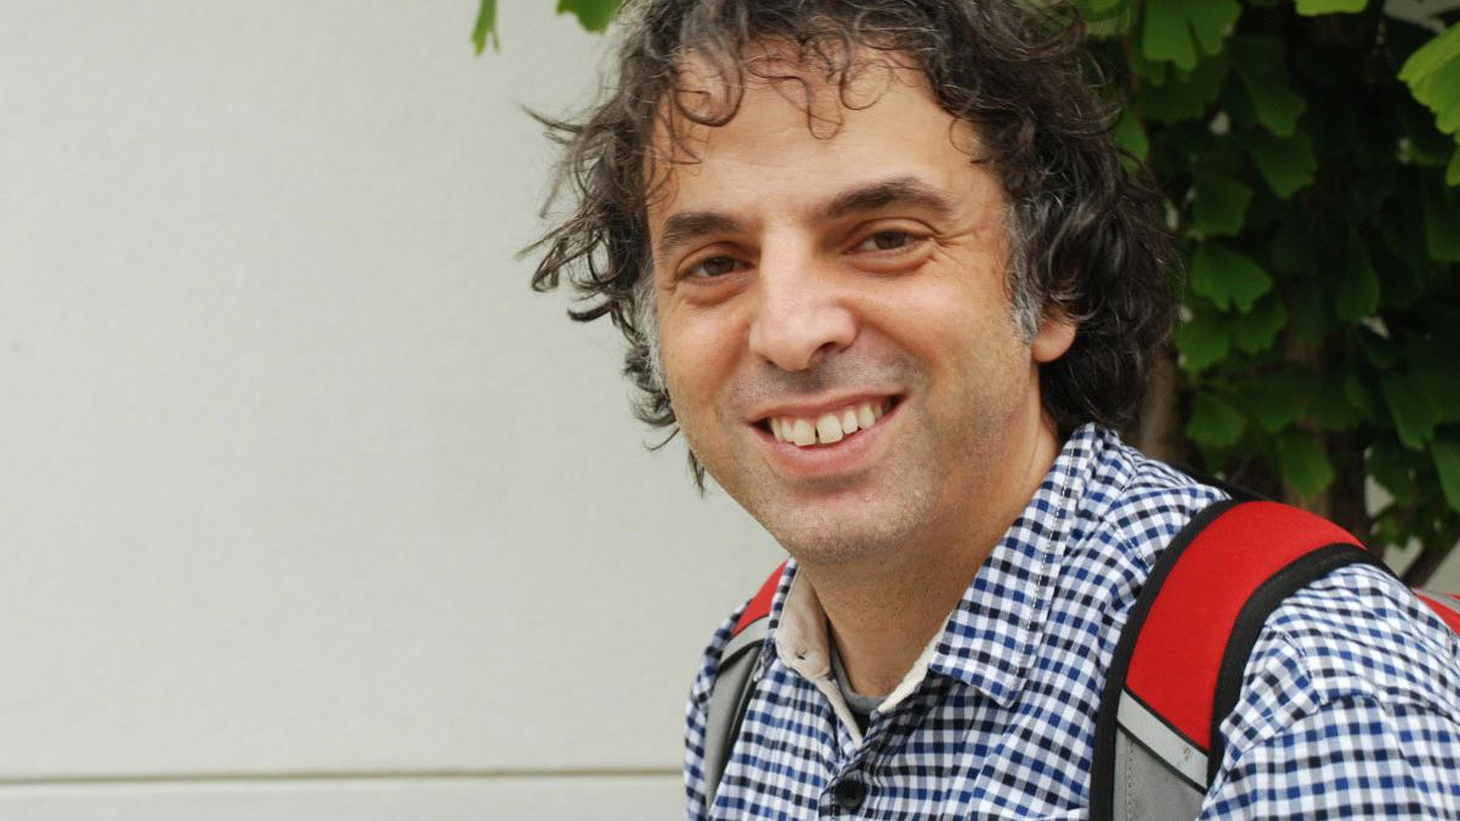 Israeli writer Etgar Keret talks about the explosive and funny stories that voyage into the fantastic in his new book.